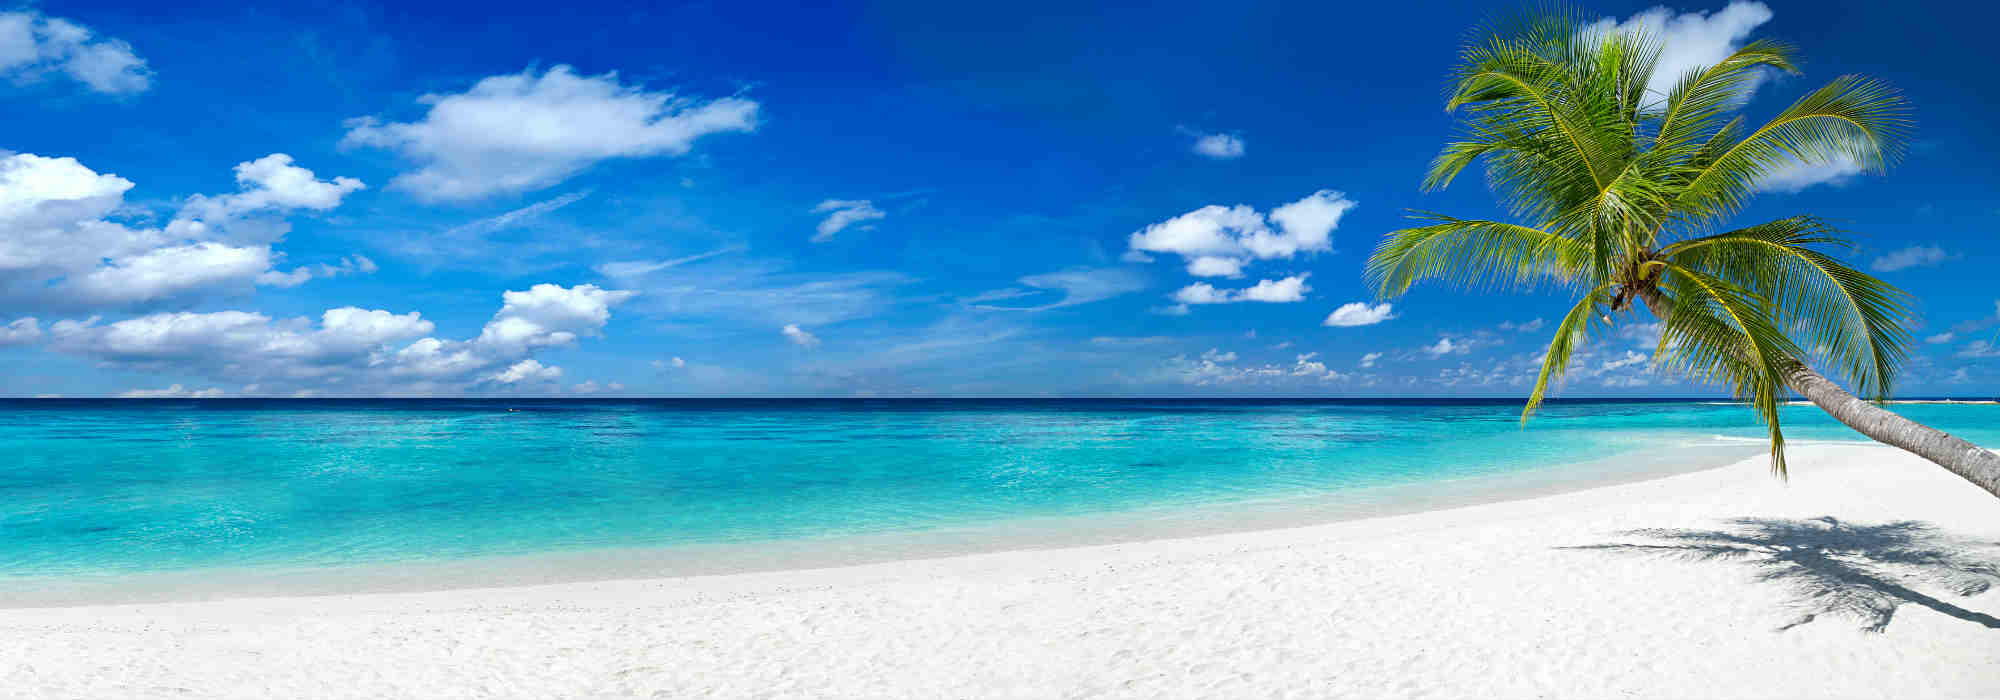 tropical paradise beach with white sand and coco palms | Just Fly Business